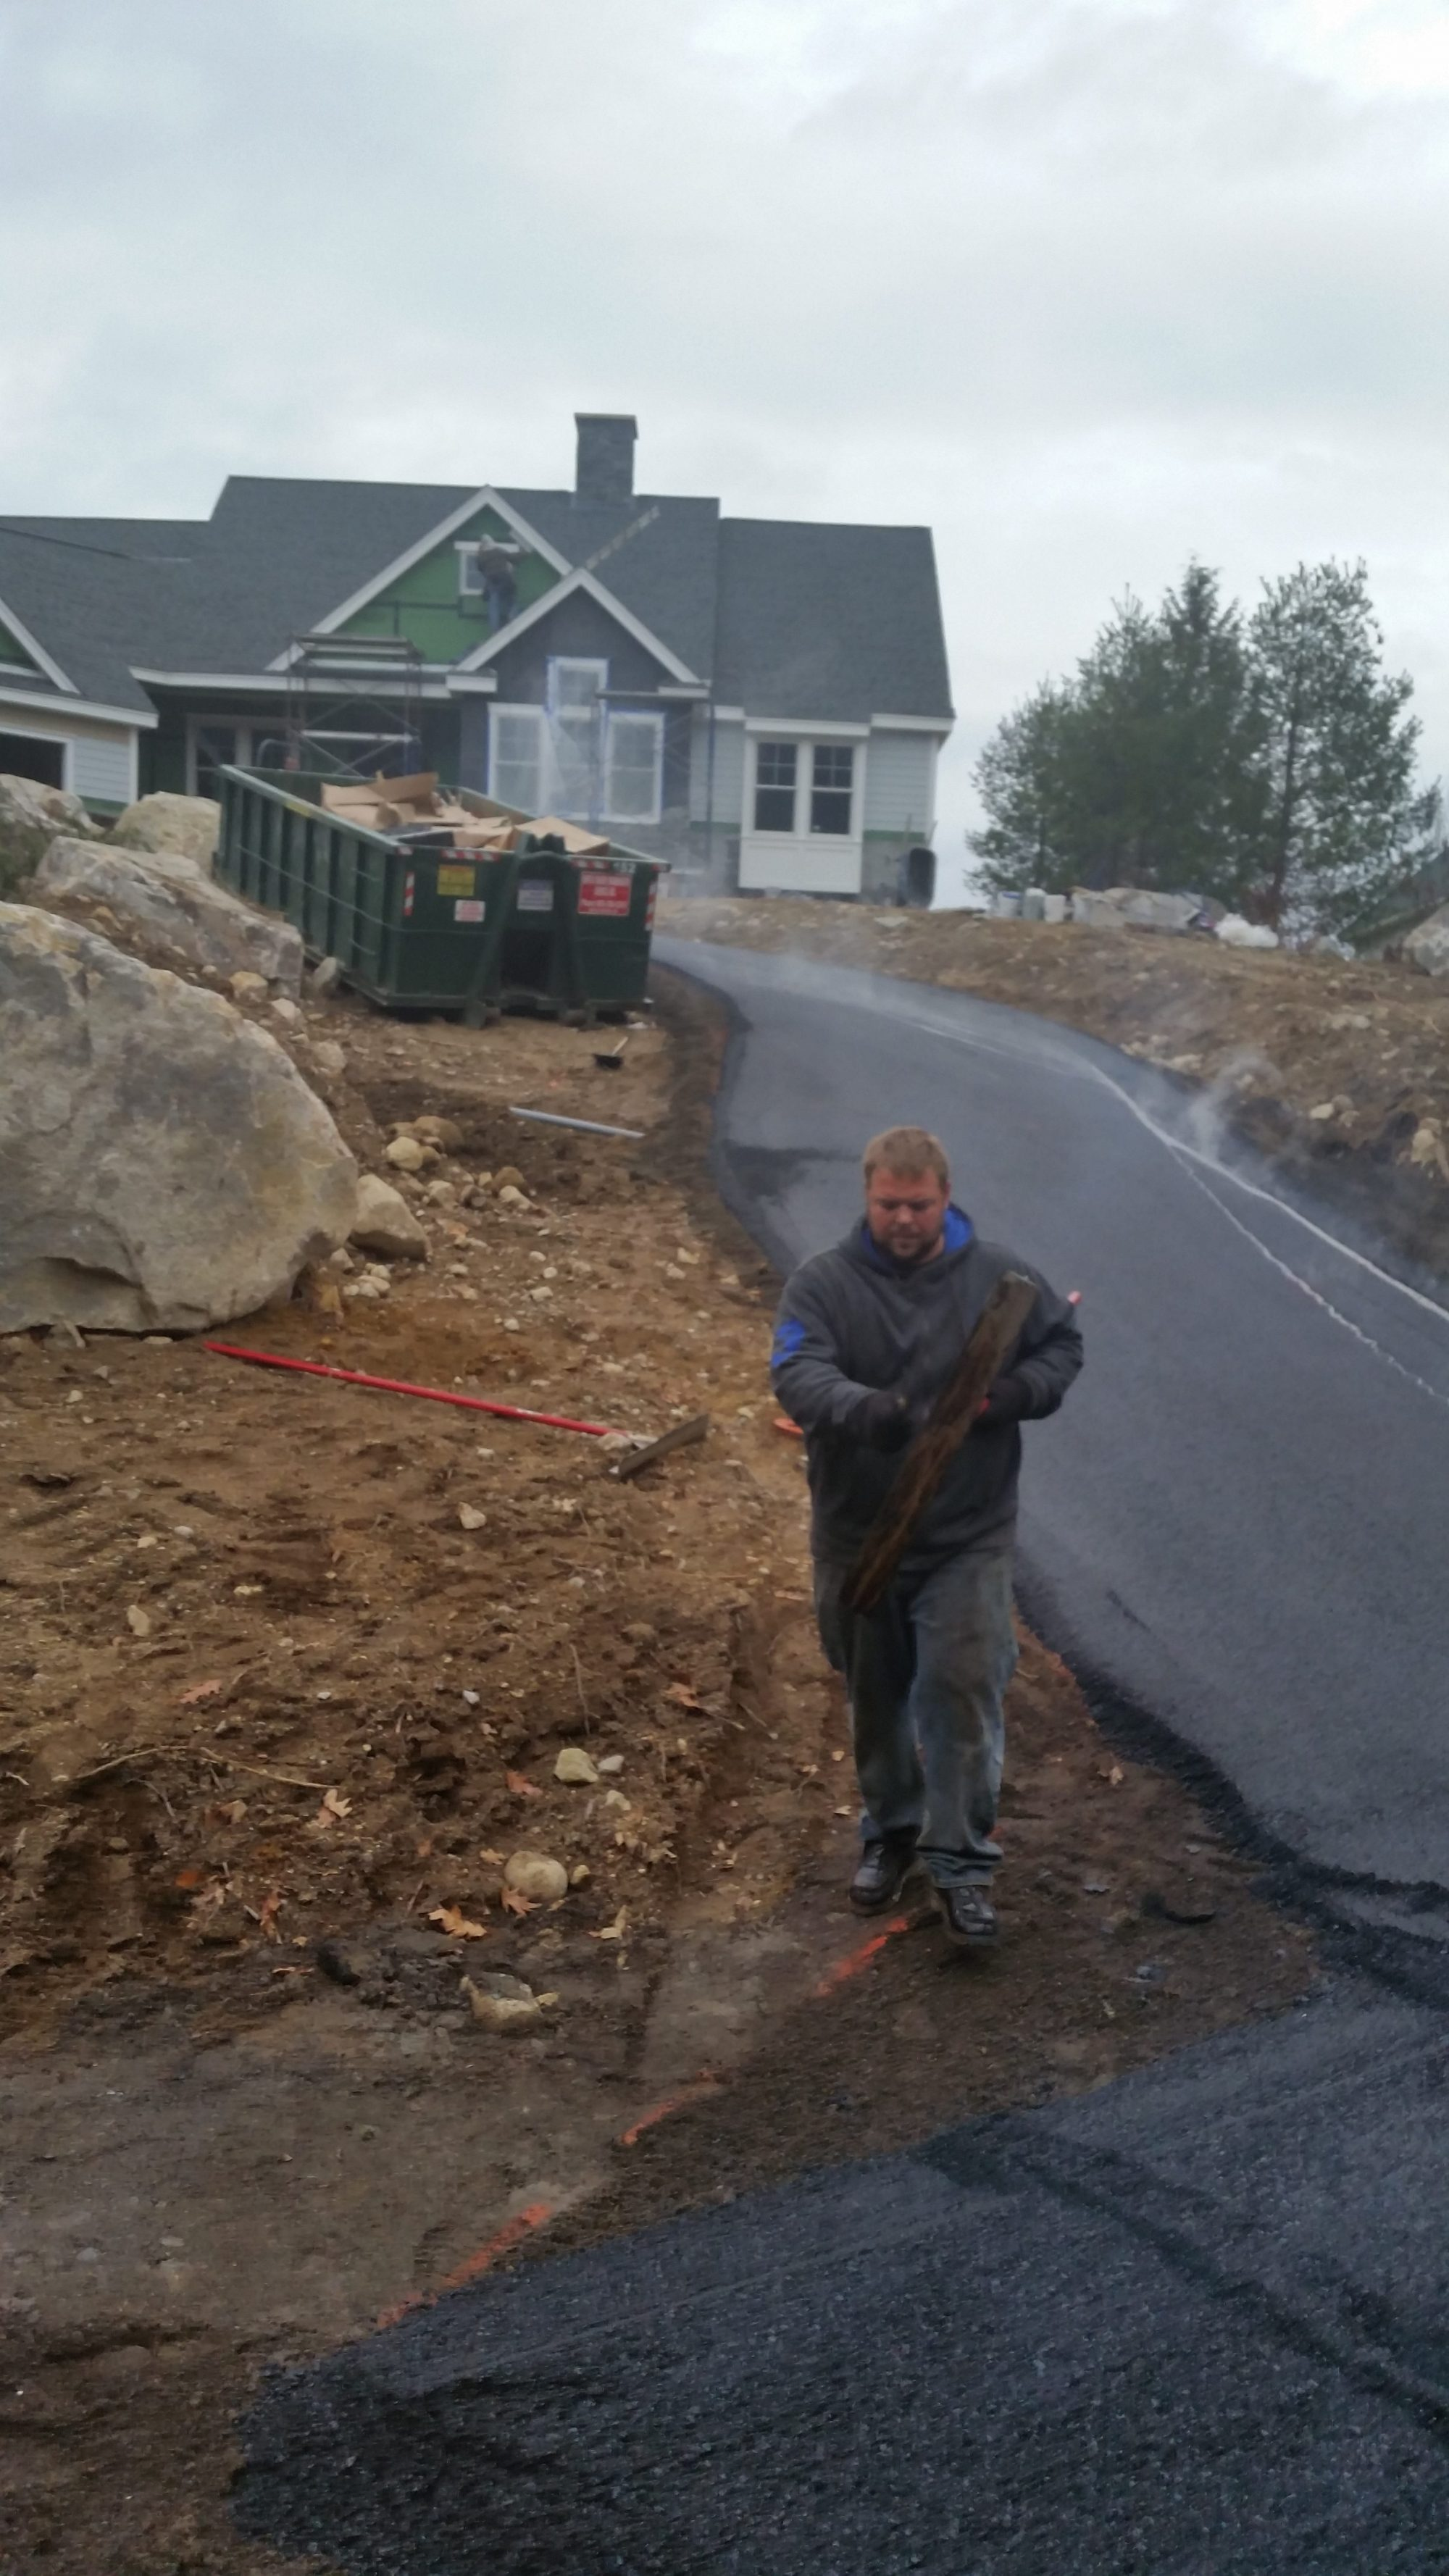 new pavement for residential driveway in New Hampshire